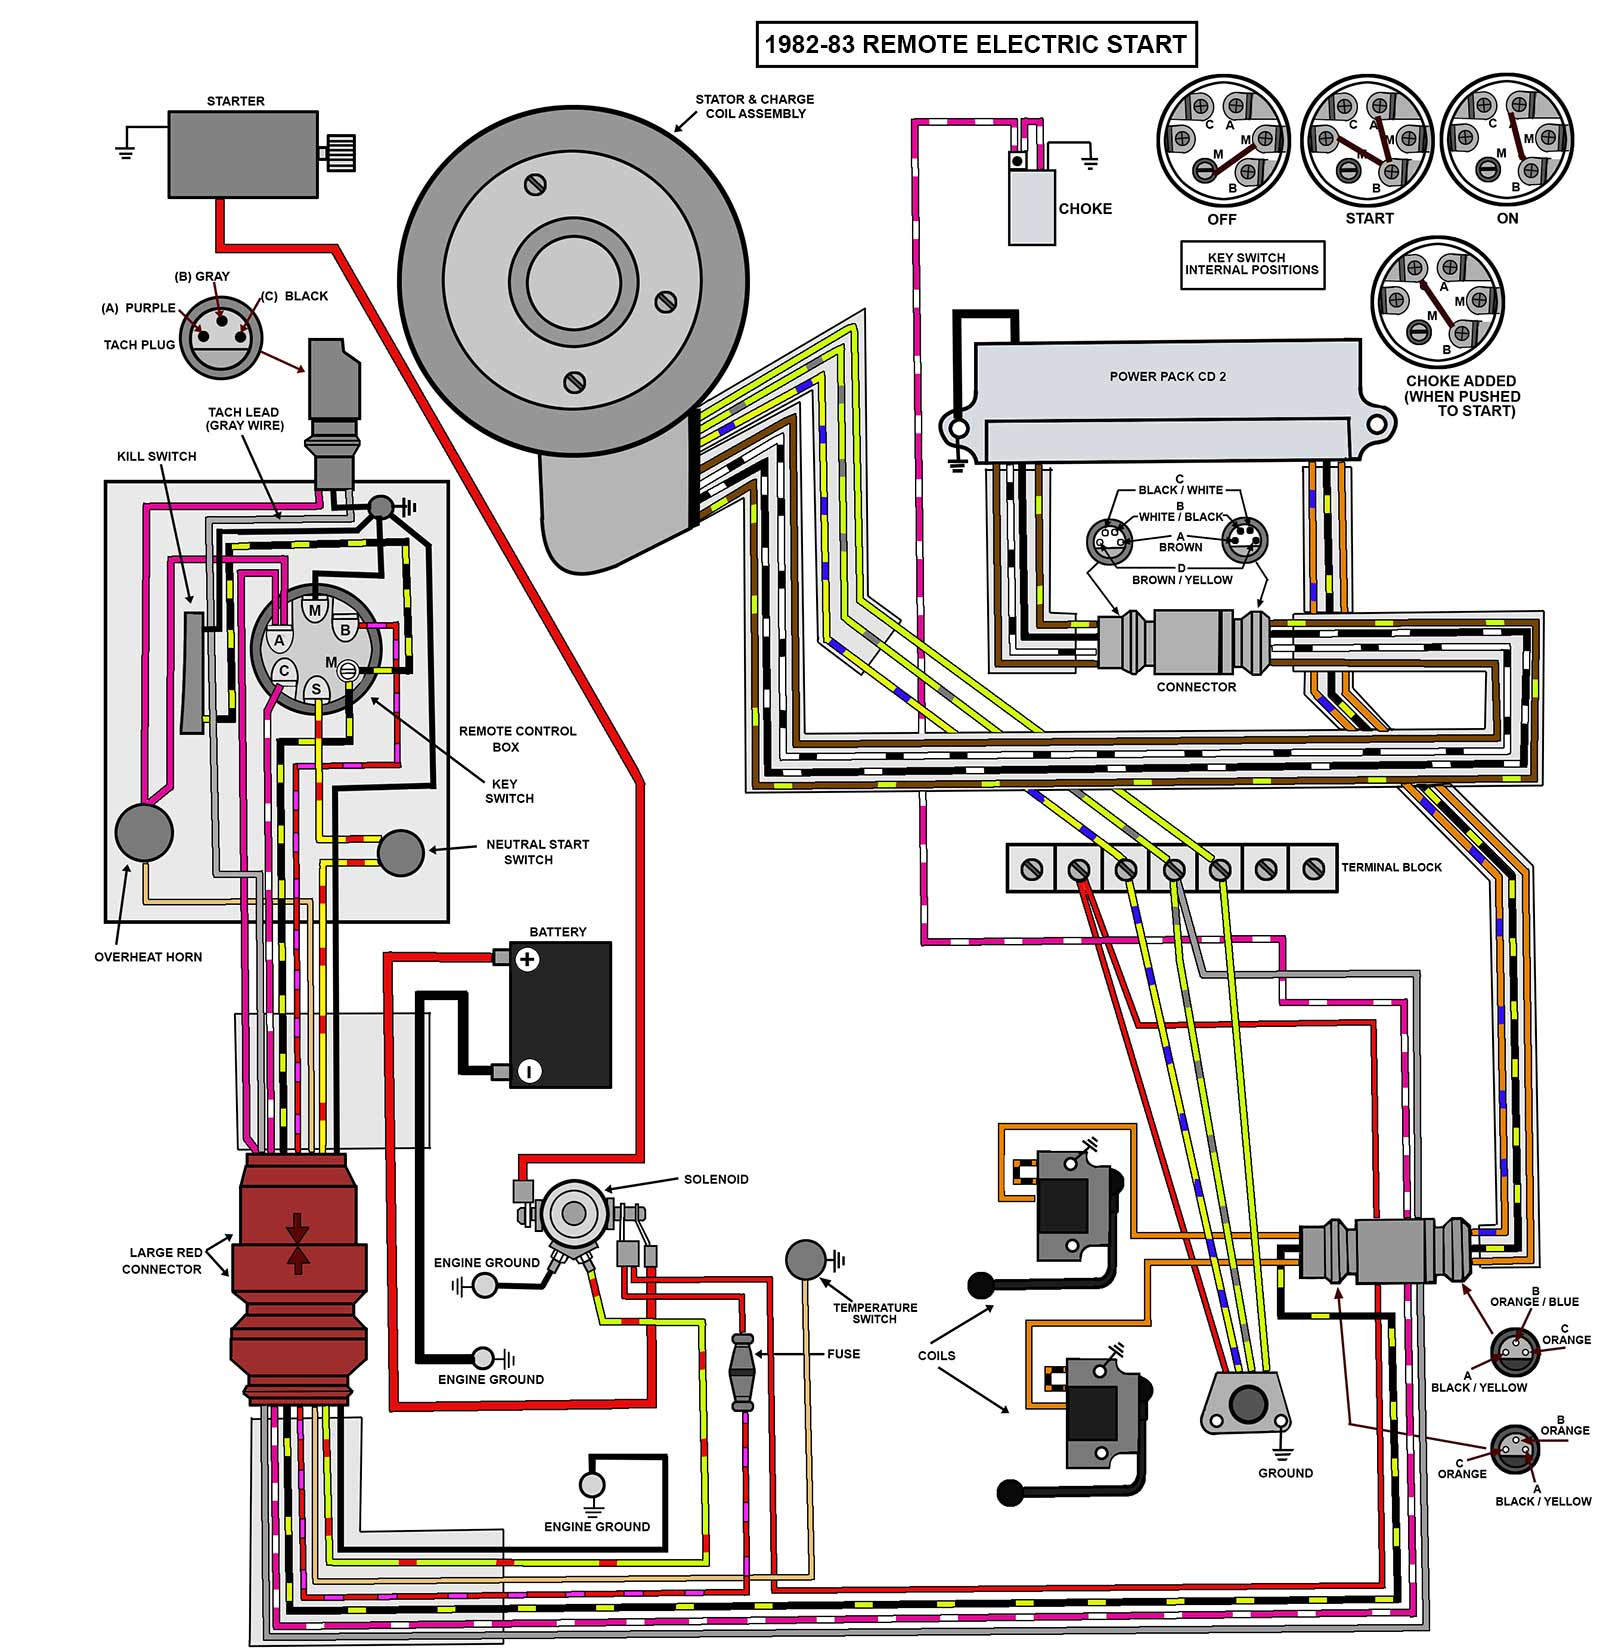 Evinrude Johnson Outboard Wiring Diagrams Mastertech Marine Rc Car Gas Diagram 25 35 Hp Electric Start Remote